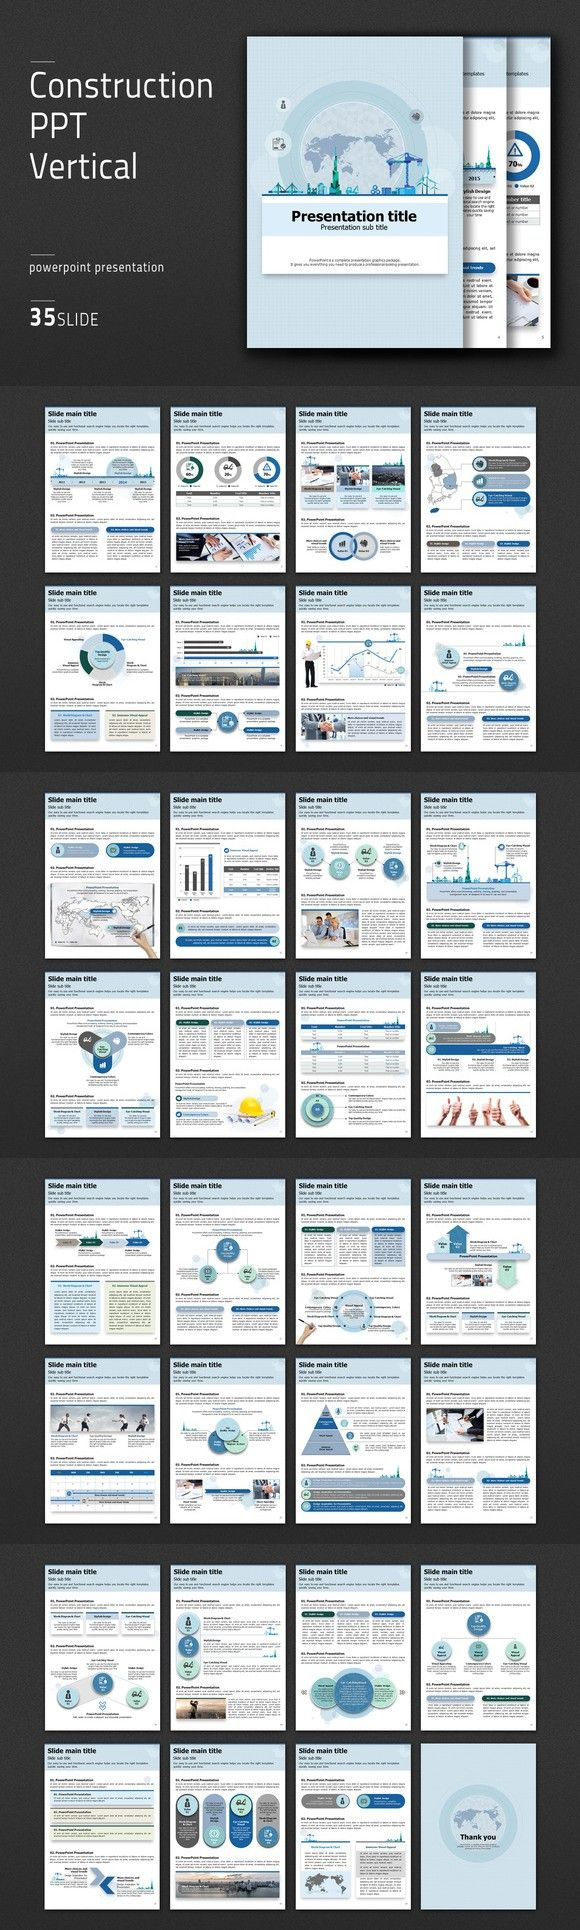 Construction PPT Vertical. PowerPoint Templates. $41.00